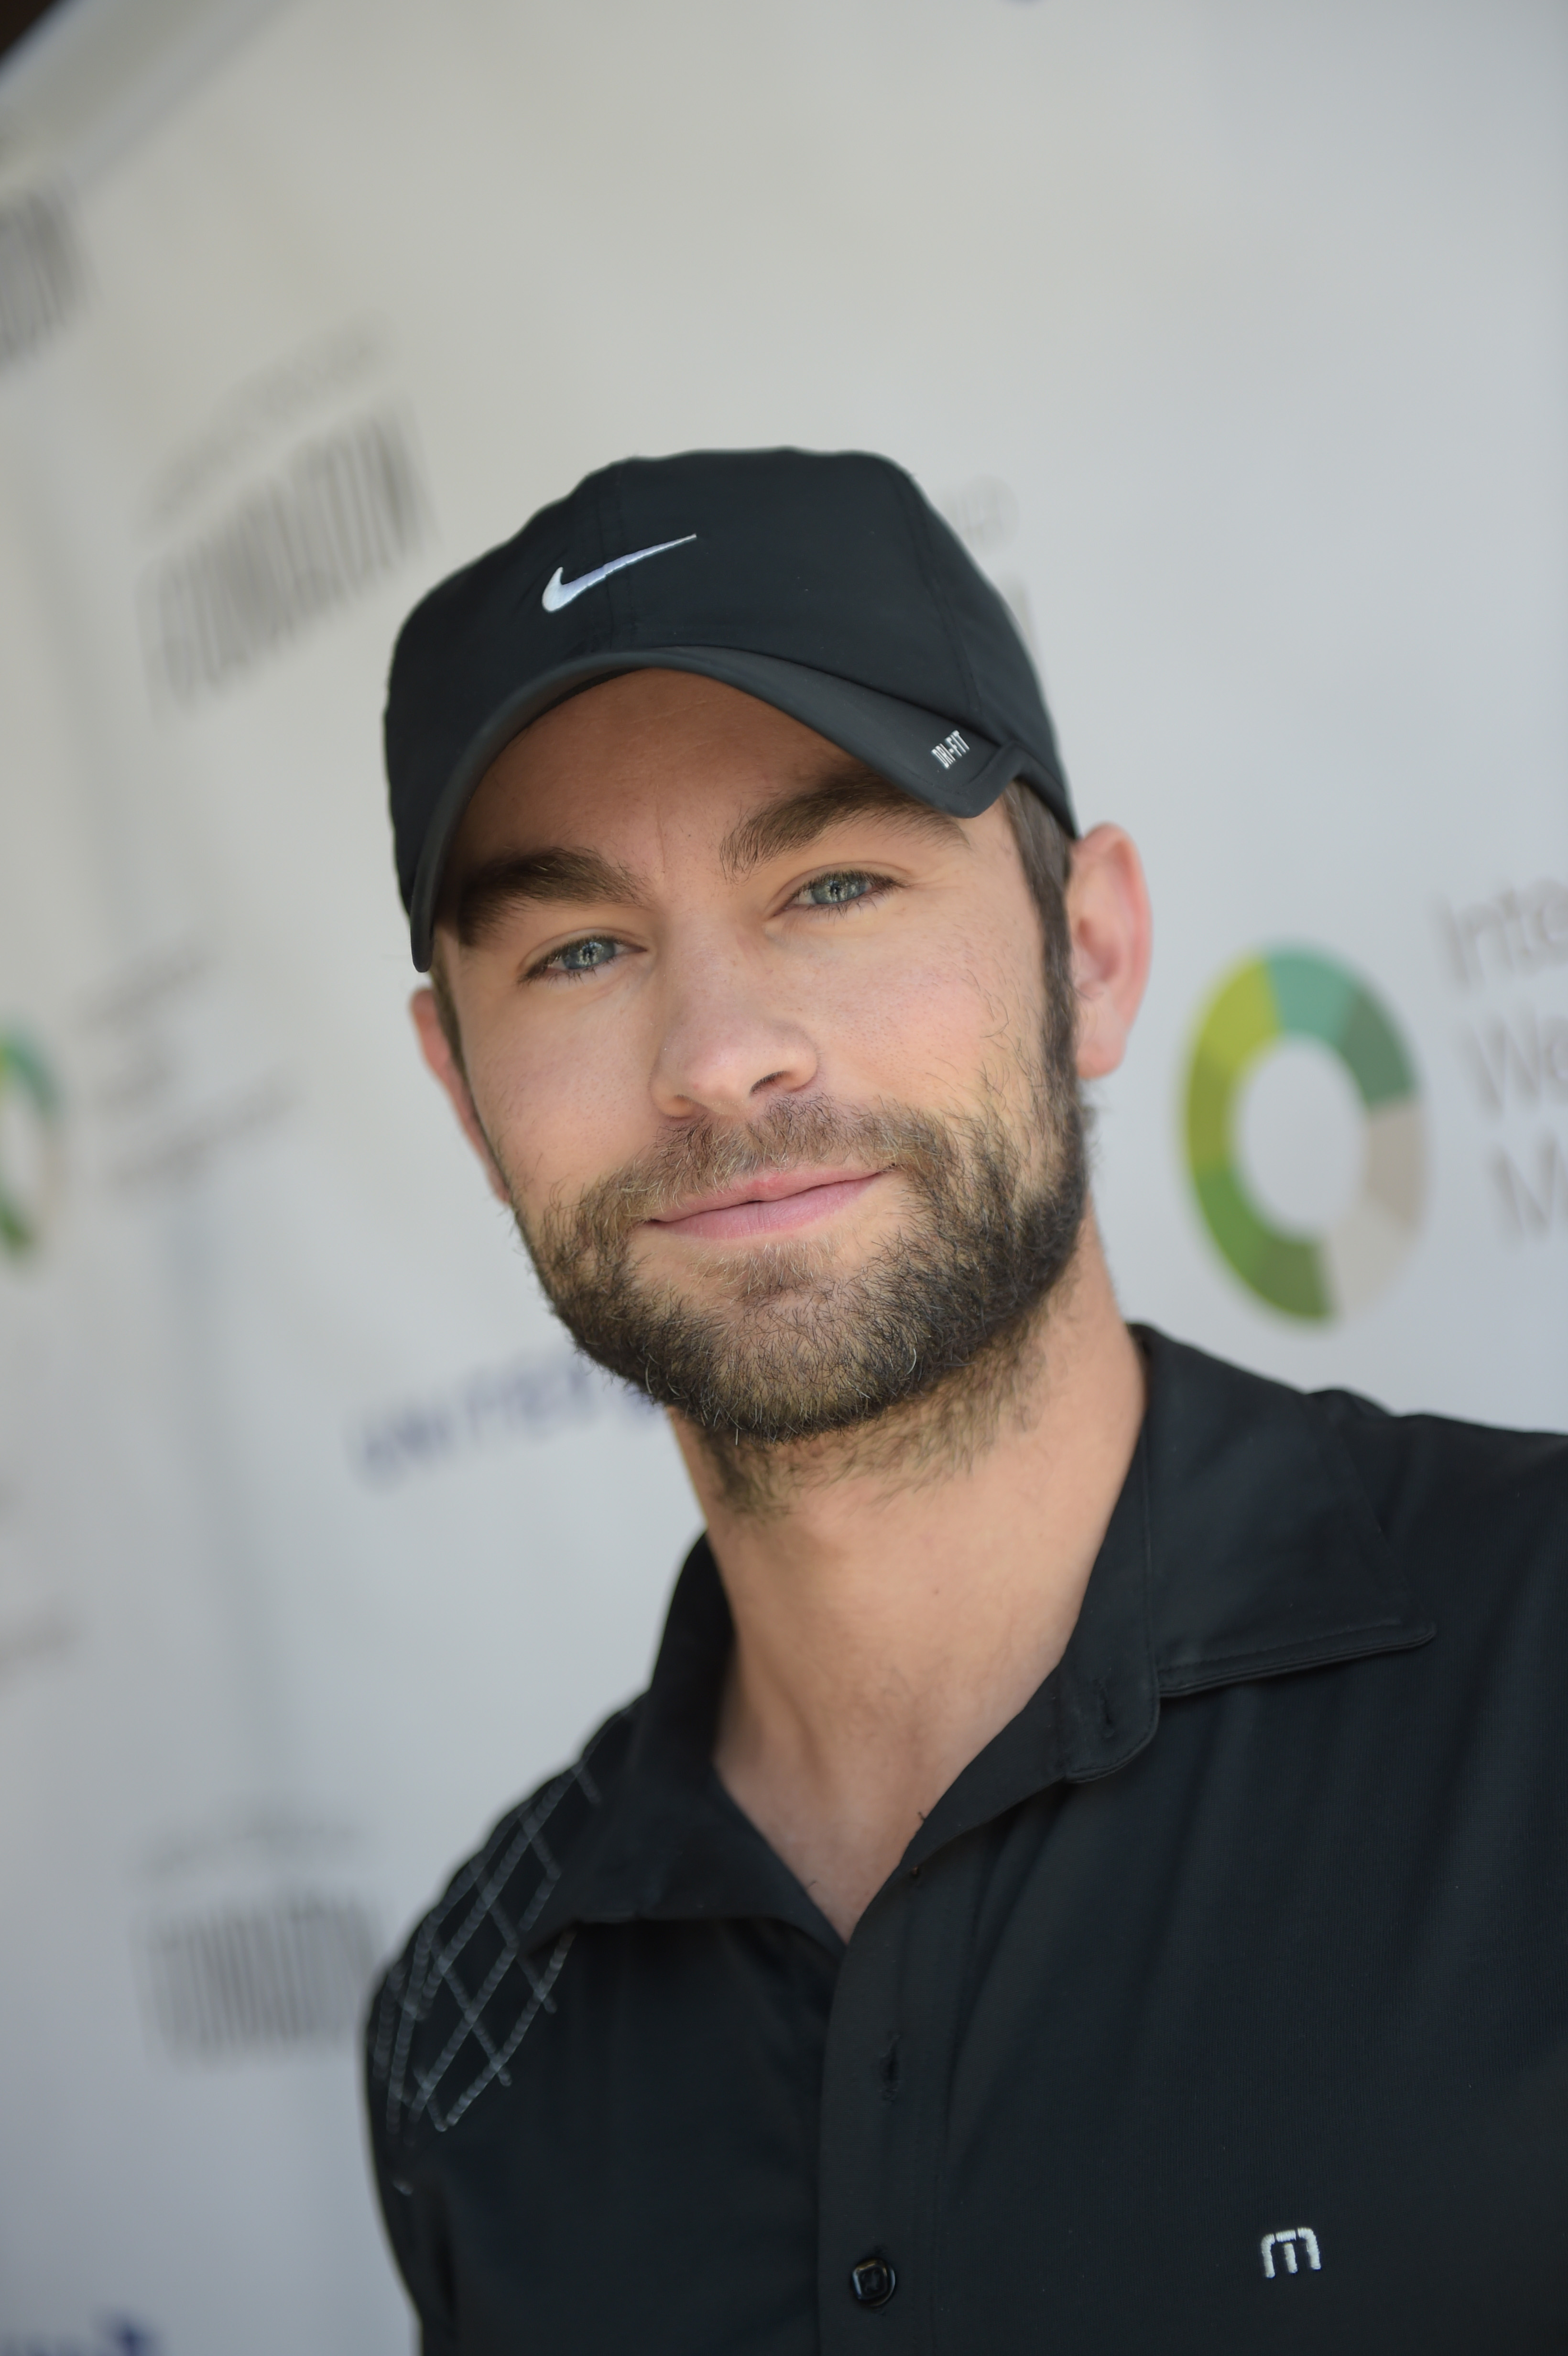 Chace Crawford attends The Screen Actors Guild Foundation's 6th Annual Los Angeles Golf Classic on June 8, 2015 in Burbank, California. (Photo by Jason Kempin/Getty Images for The Screen Actors Guild Foundation)